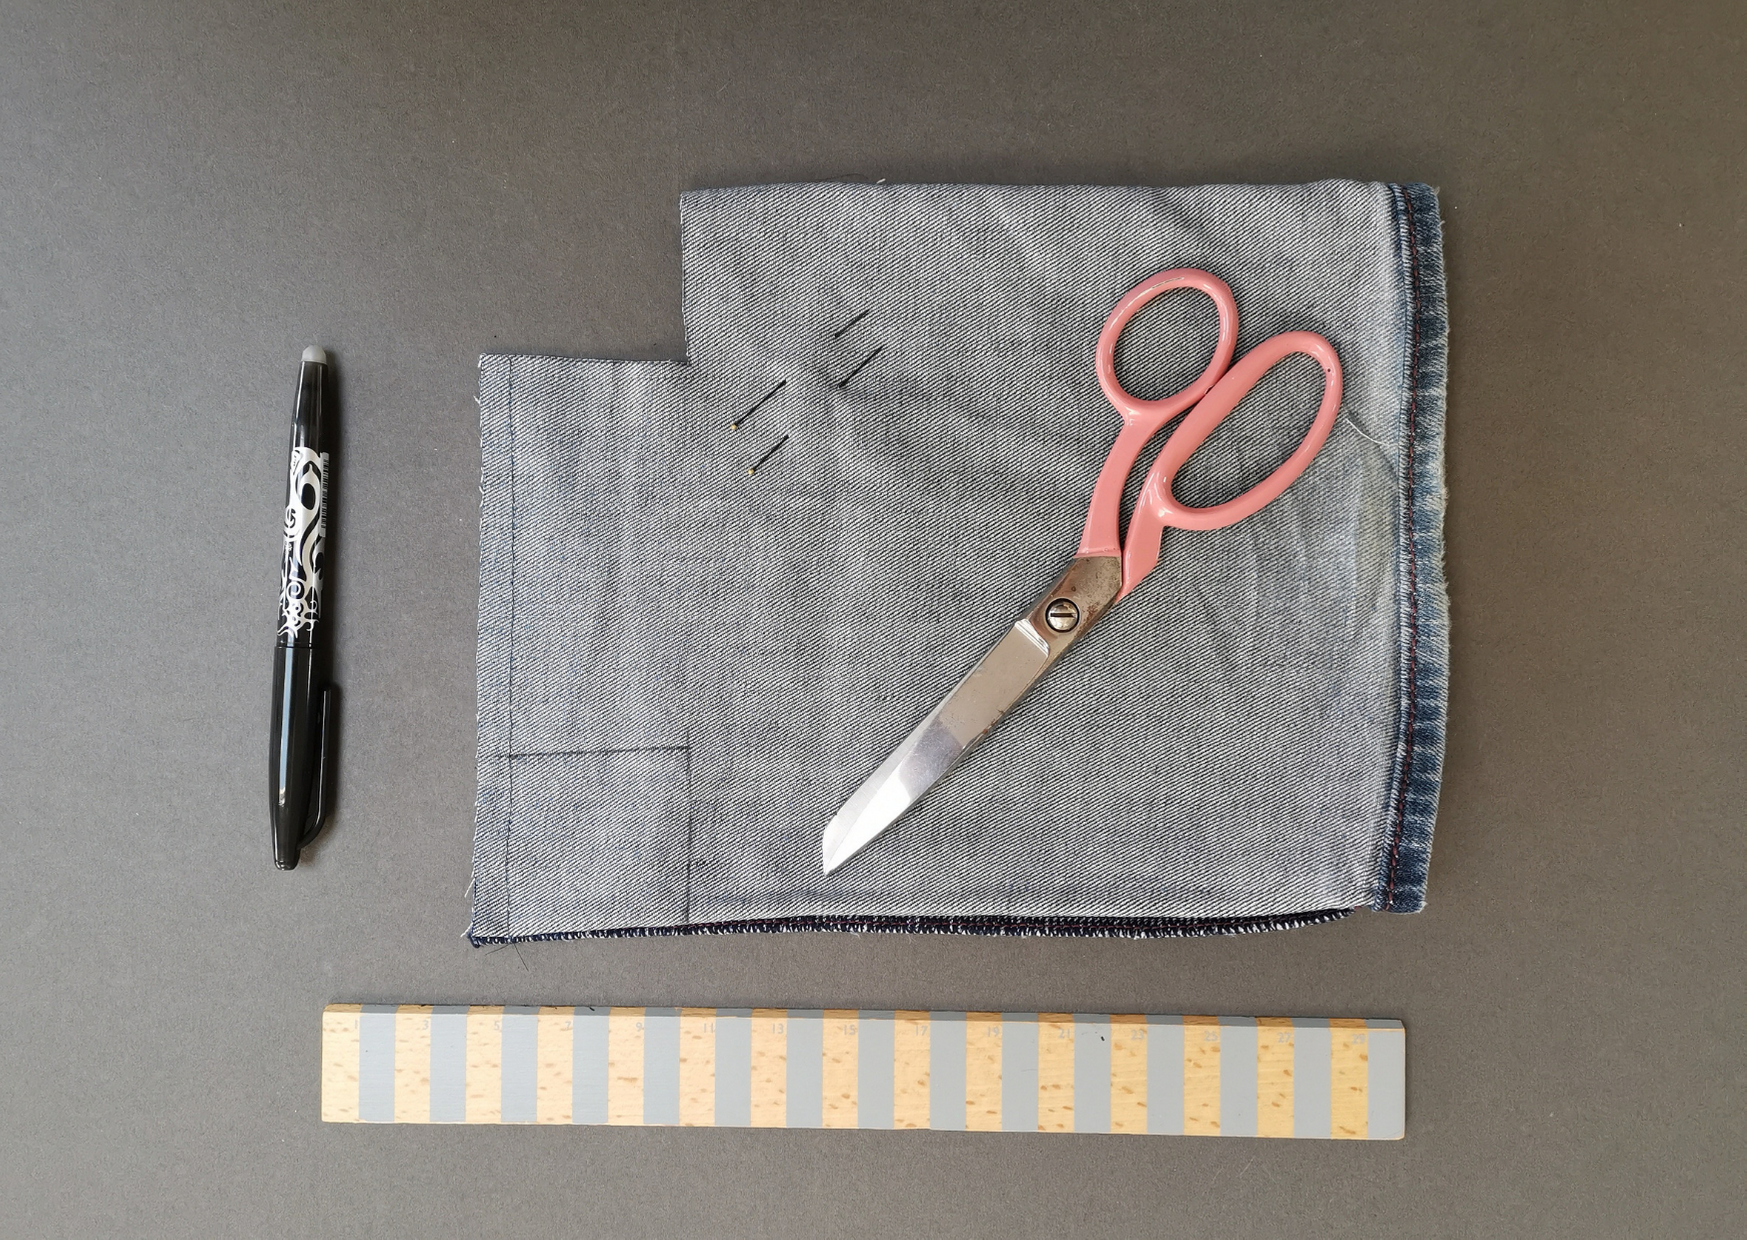 Leg of a pair of jens cut off at teh ankel with a pair of pink scissors, two pins, a pen and a ruler.  A square has been cut at the bottom to show the first stage of making a boxed bag.